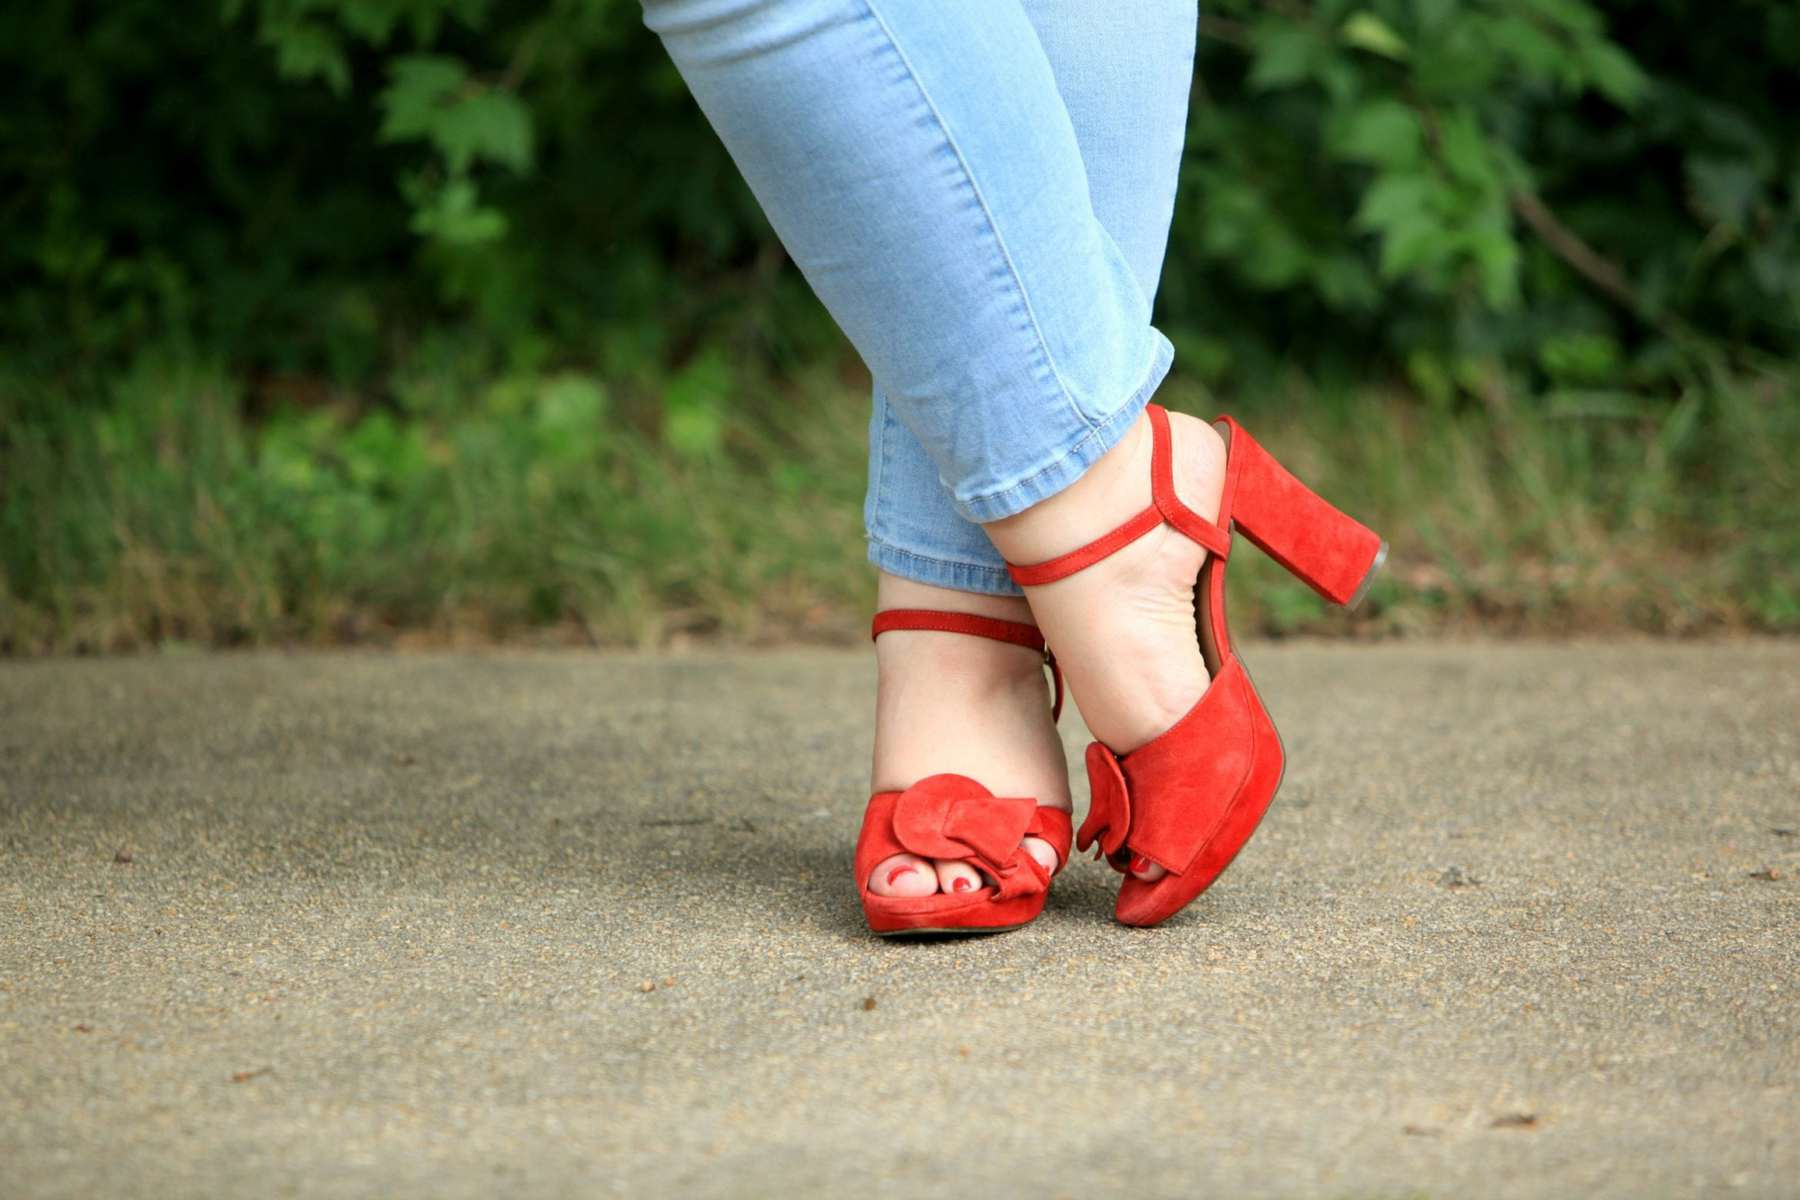 Picture of feet, ankles crossed. The legs are in light wash ankle length jeans, on the feet are red suede ankle strap block heel platform sandals.